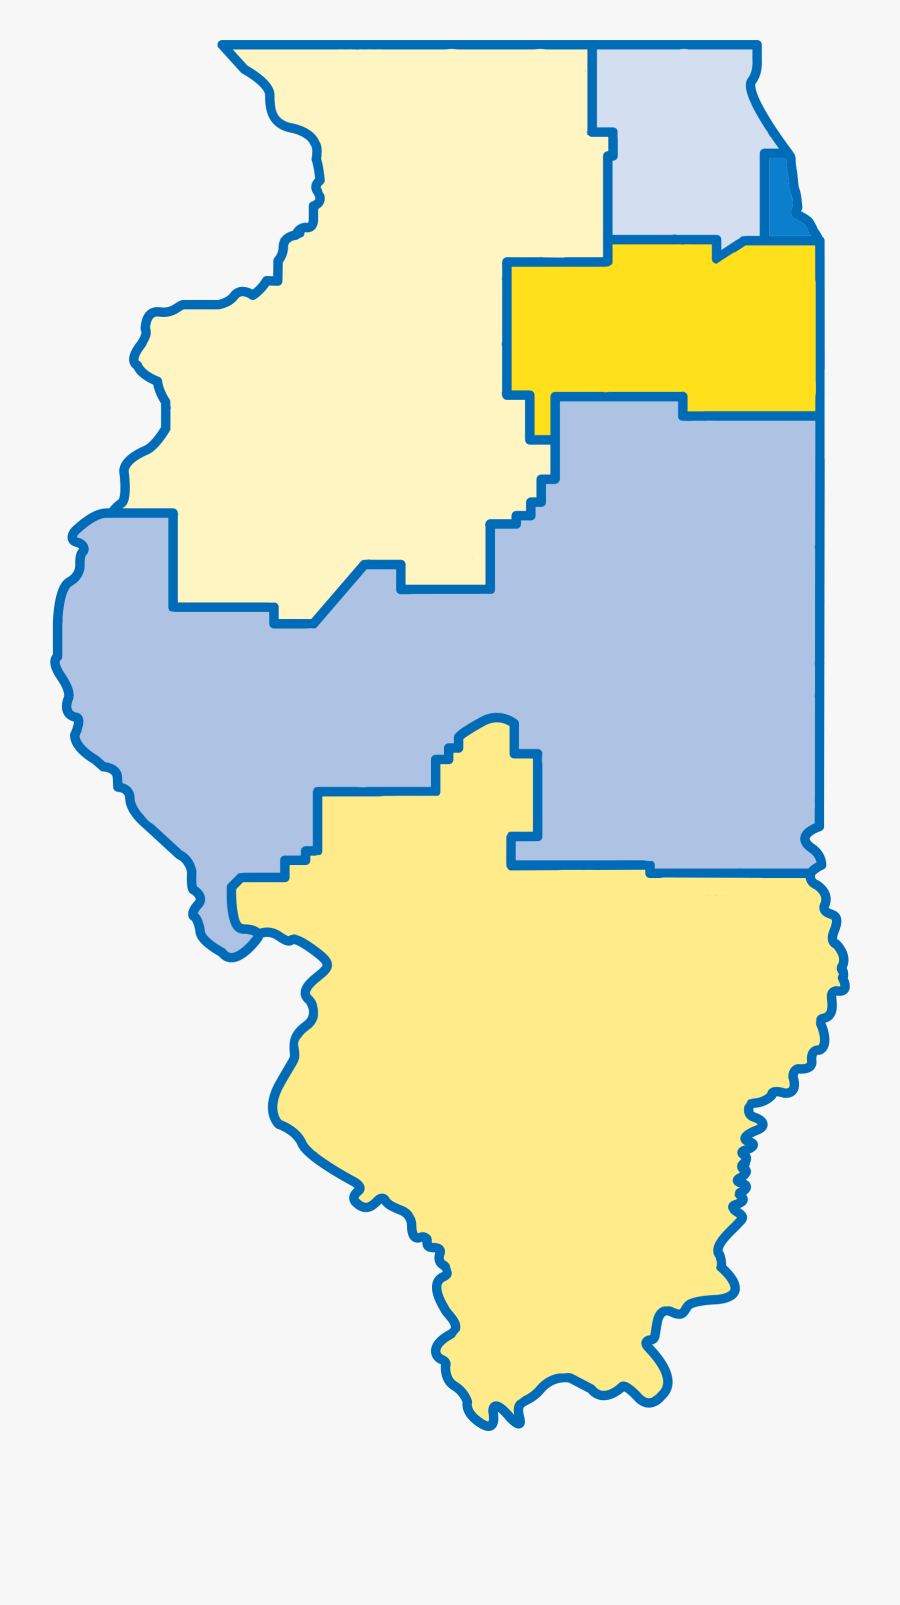 Star Net Regional Map - Map Of Landfills In Illinois, Transparent Clipart